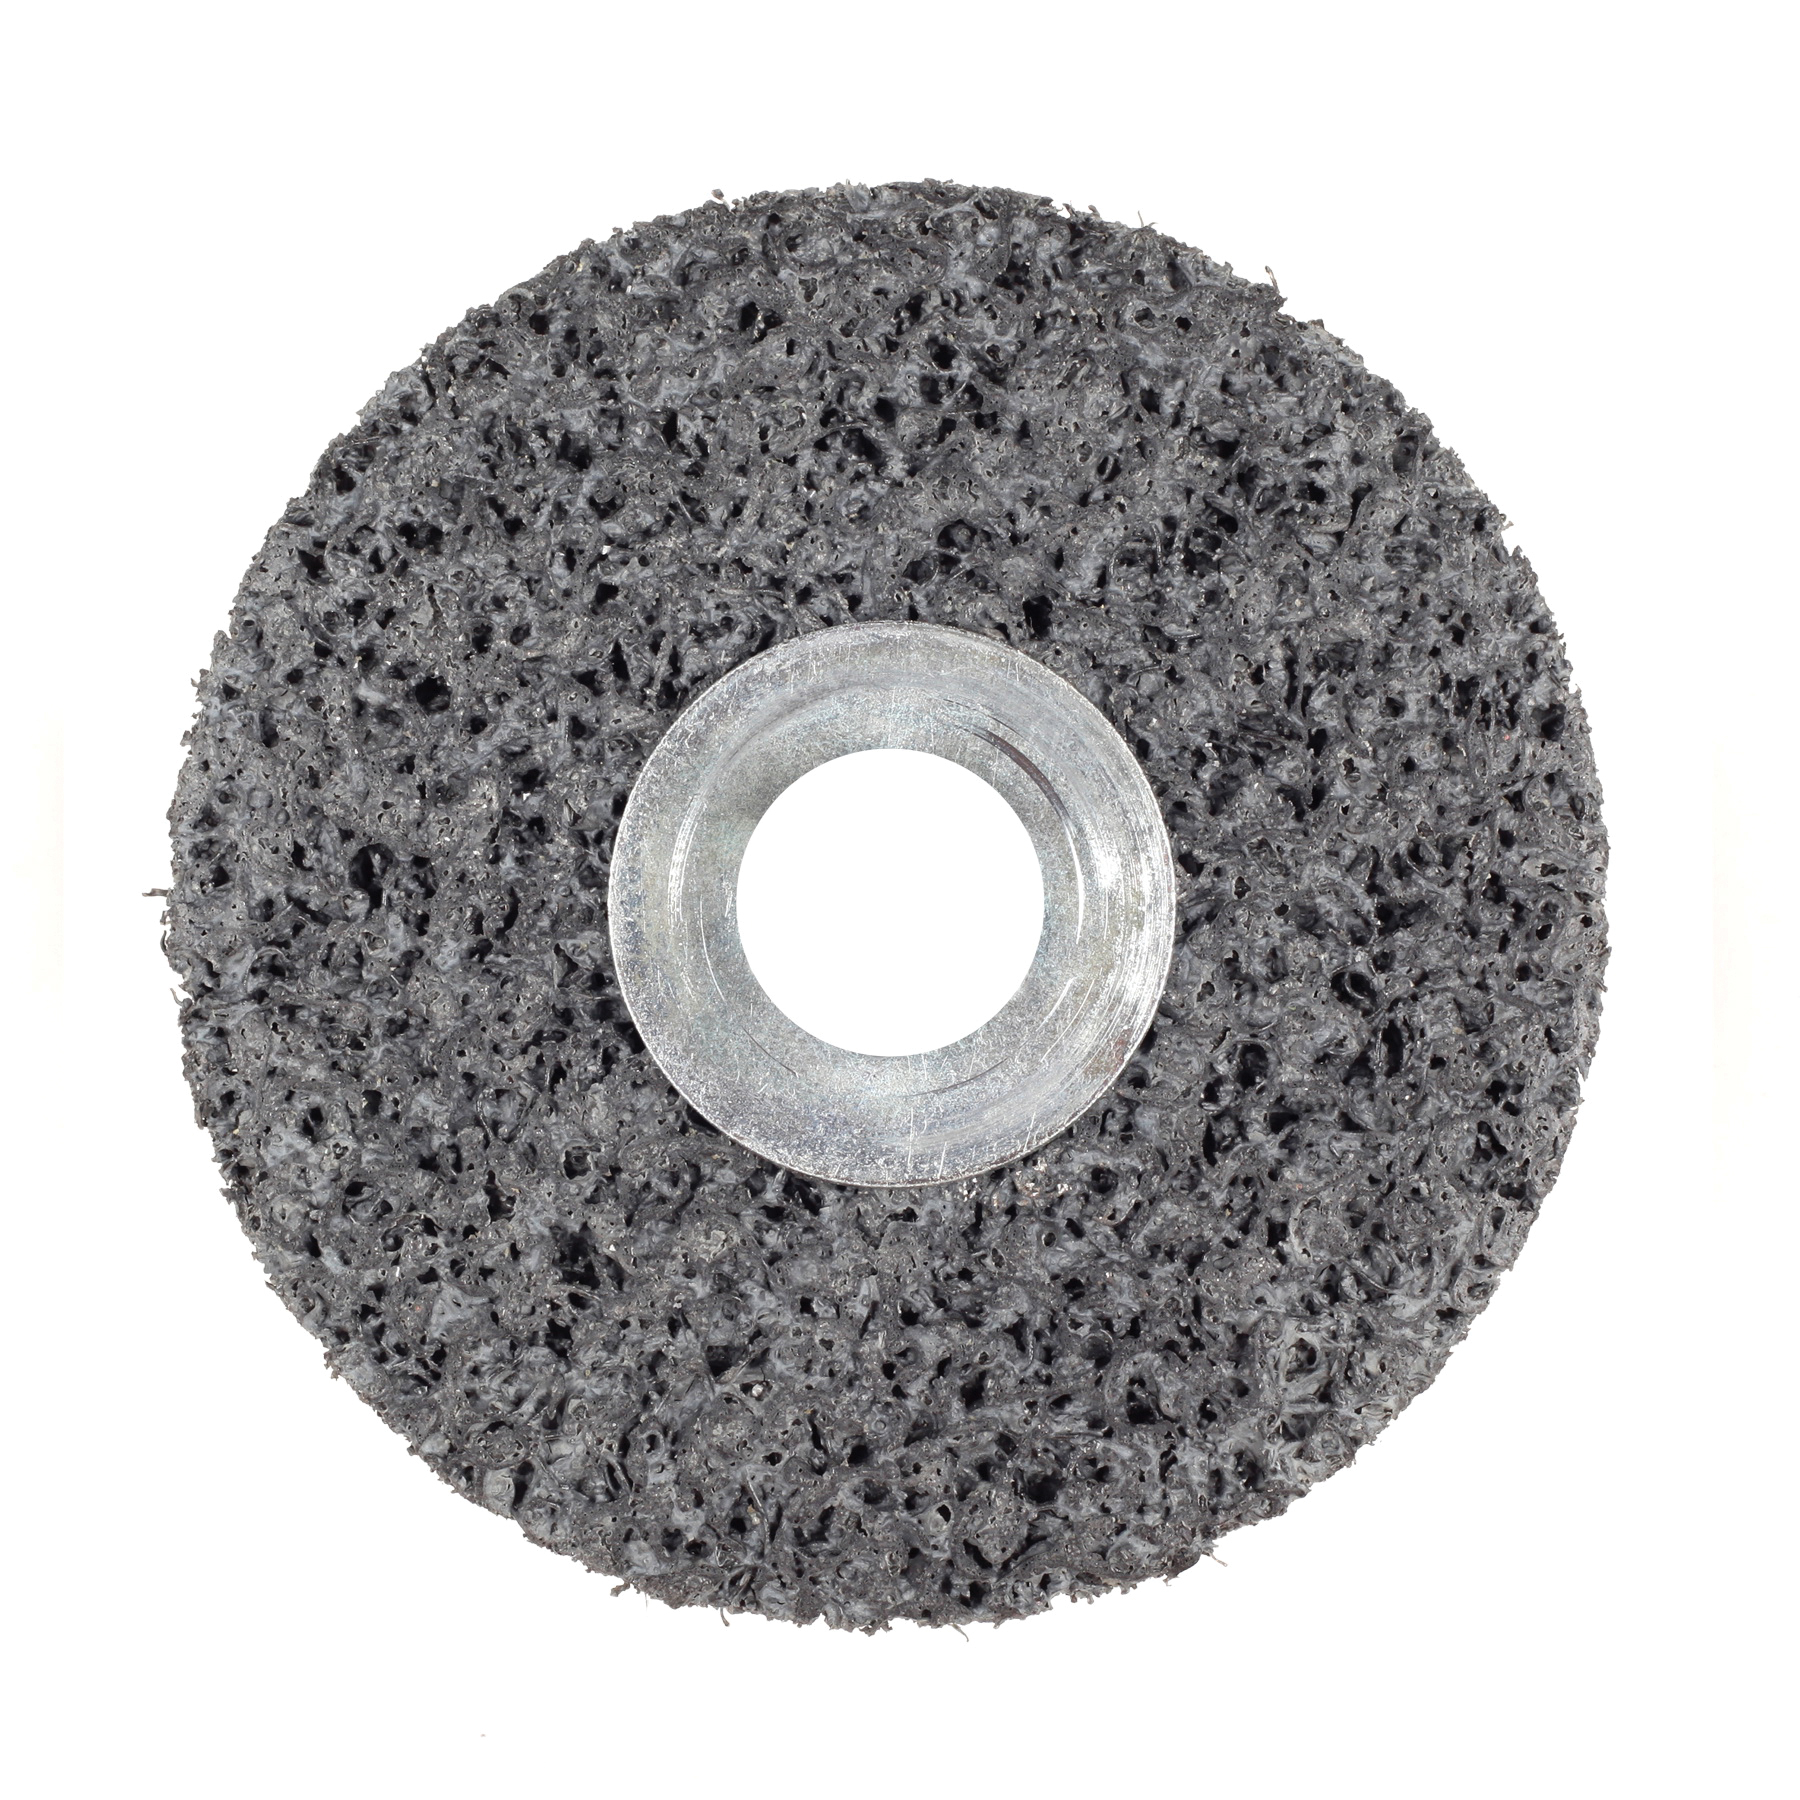 Scotch-Brite™ 048011-01009 CS-UW Clean and Strip Unitized Wheel, 3 in Dia Wheel, 1/4 in Center Hole, 1/2 in W Face, Extra Coarse Grade, Silicon Carbide Abrasive